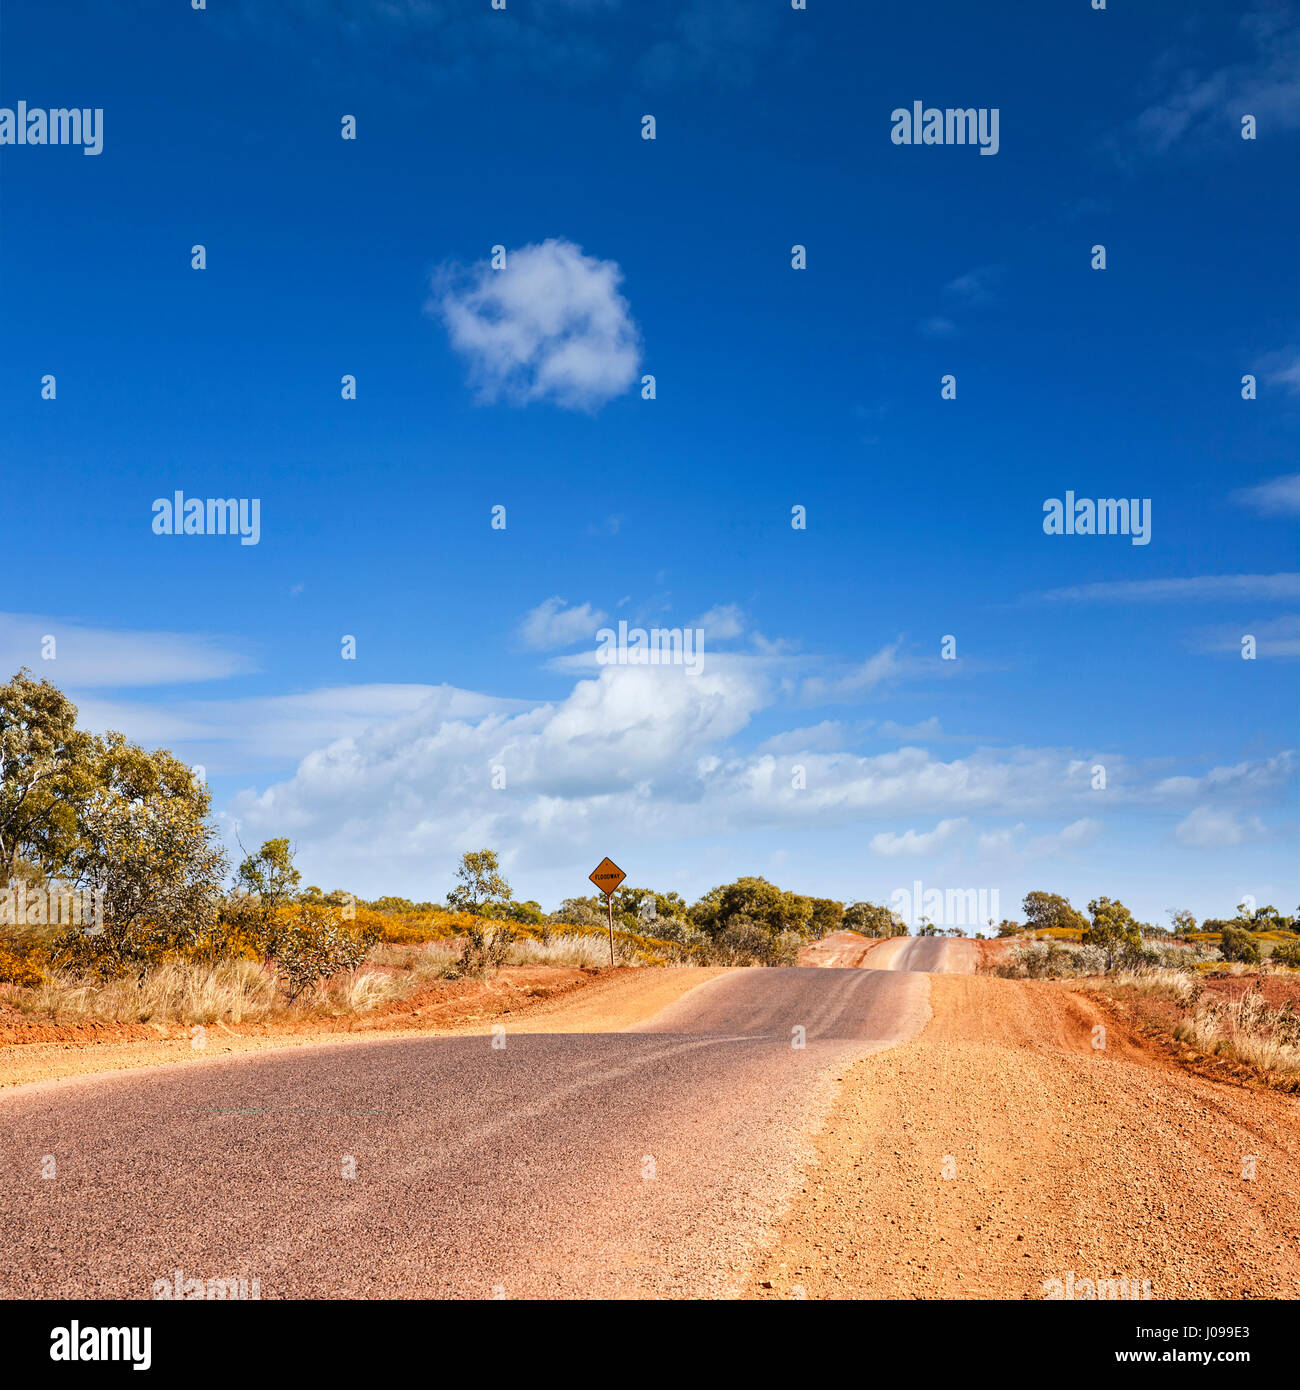 This bumpy road in the desert is the Barkly Highway in outback Queensland Australia. - Stock Image